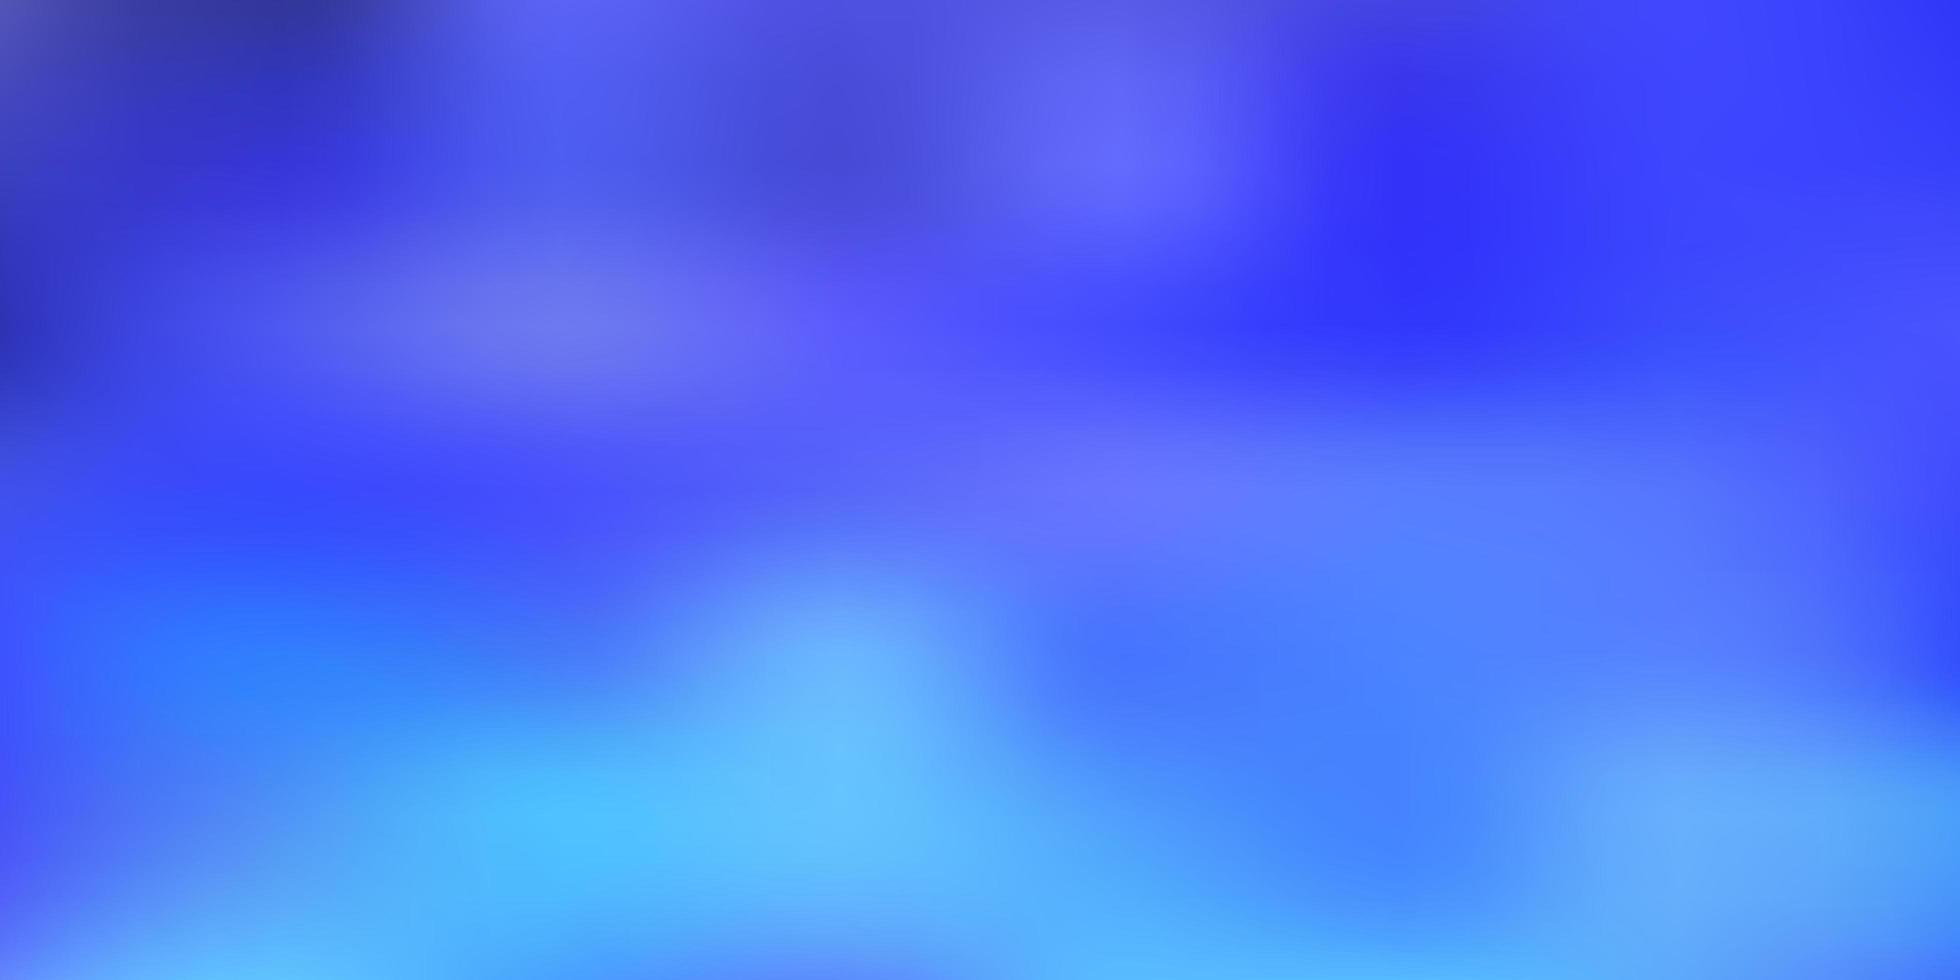 Light blue vector gradient blur background.